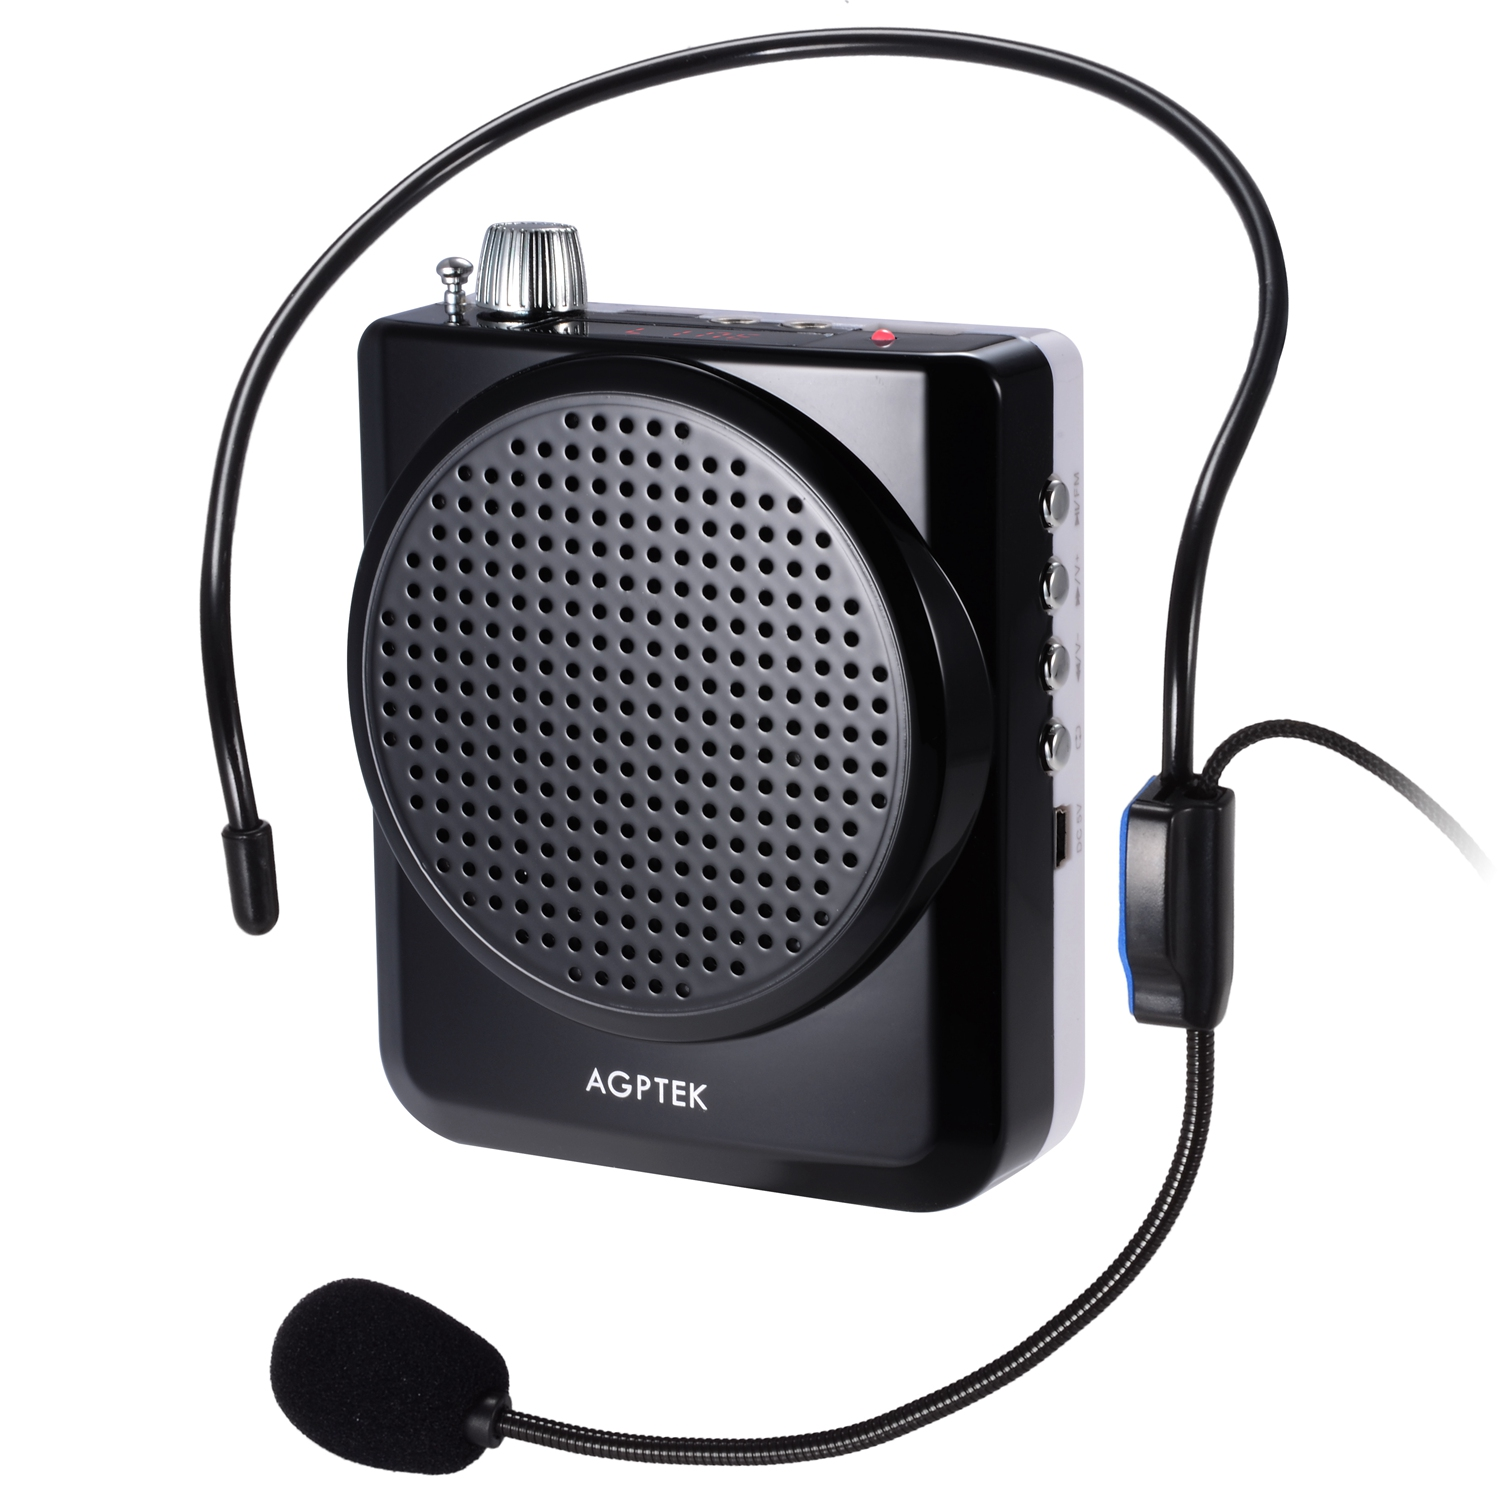 AGPtEK KY03 Portable Rechargeable Voice Amplifier Microphone Speaker Speakerphone For Teachers Coaches Tourist Guide lecturing Presentations Salesman